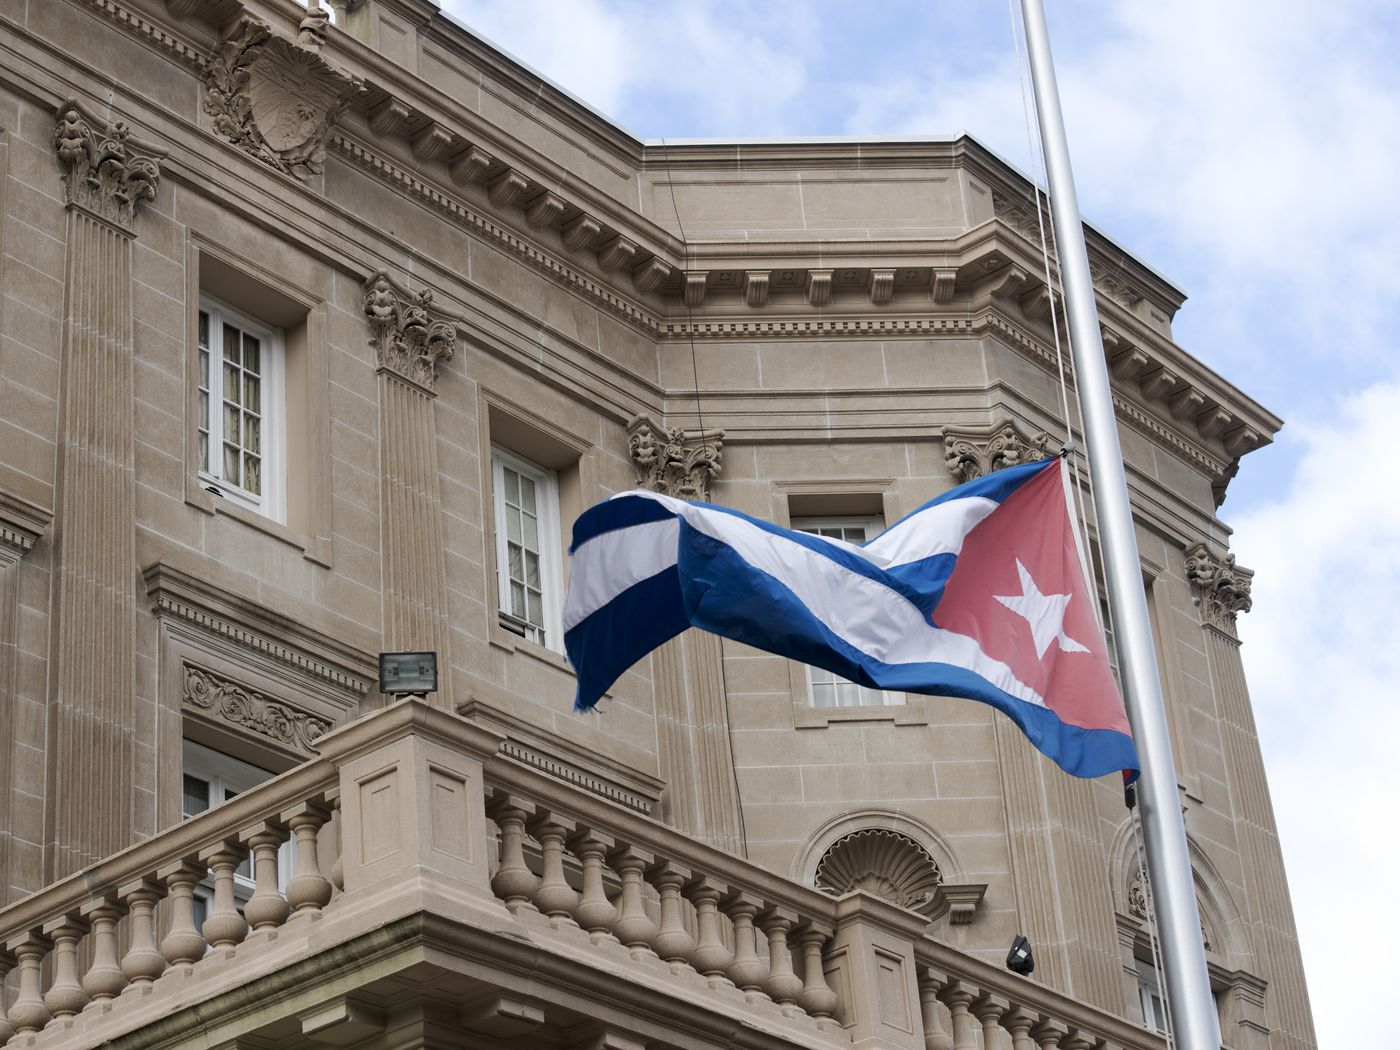 The US may close its embassy in Cuba after possible sonic weapon